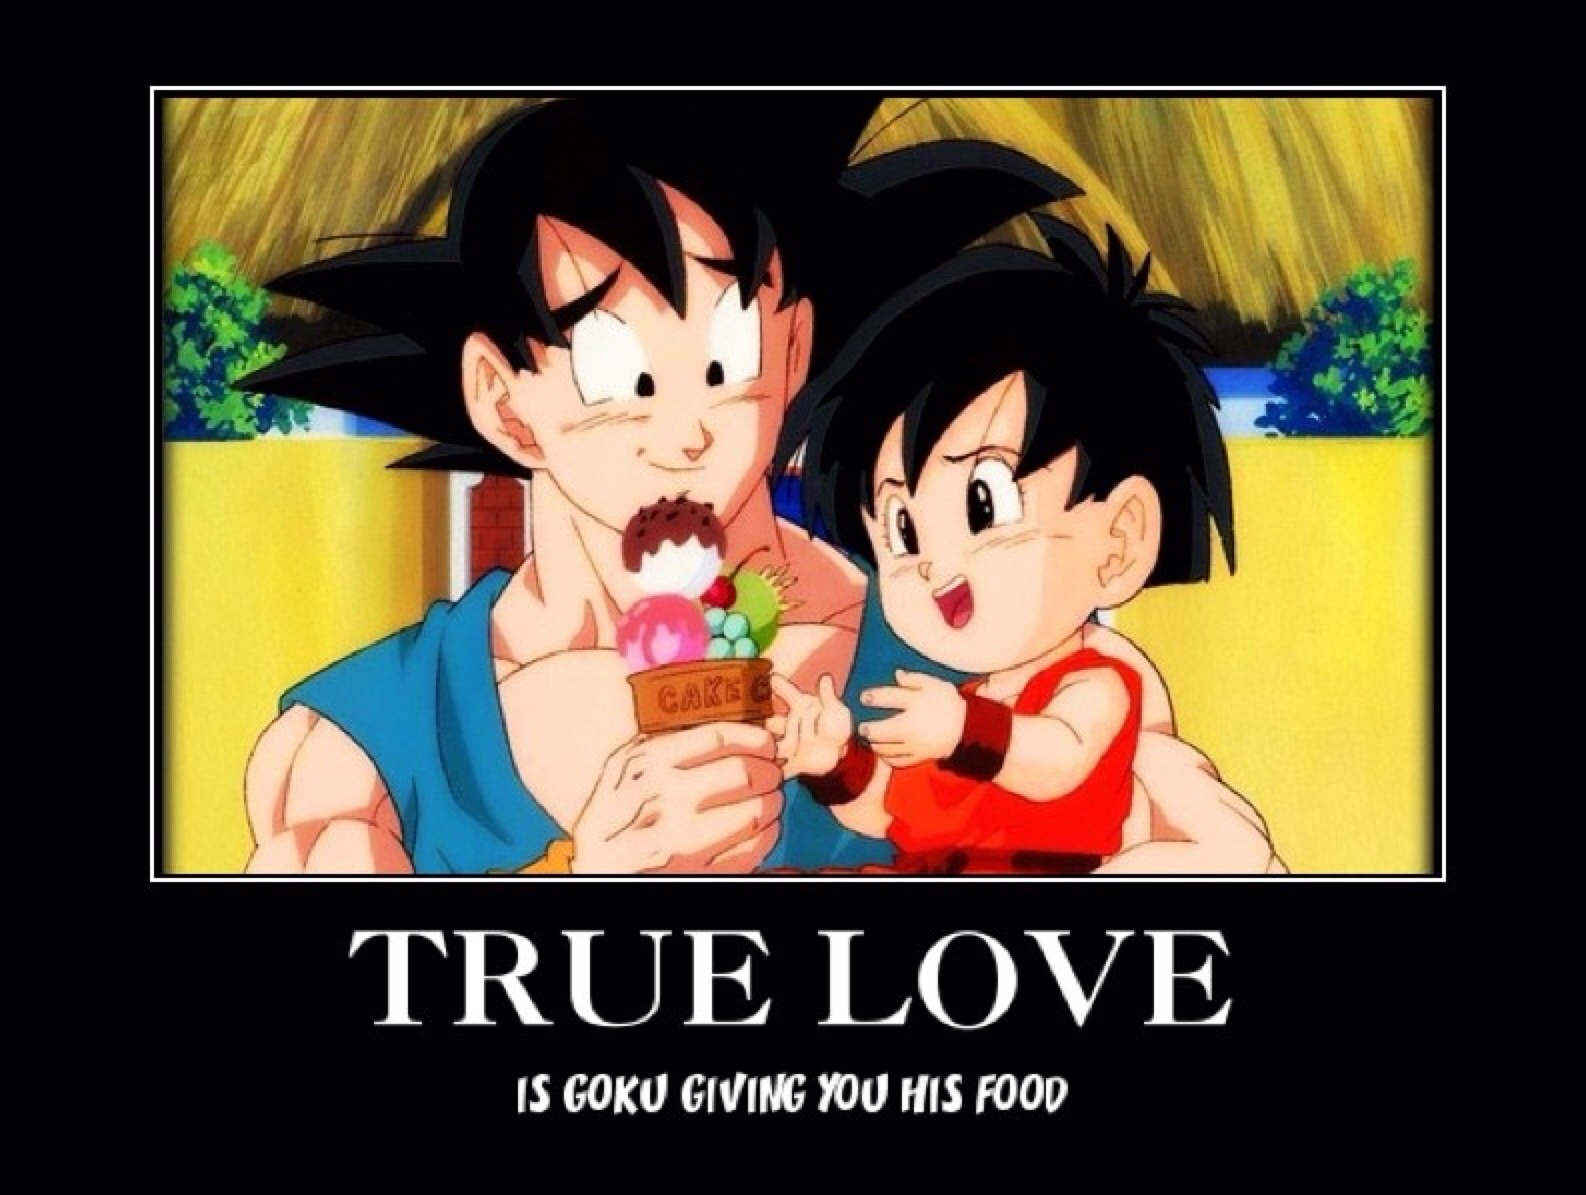 sharing food is the ultimate sign of true love - meme